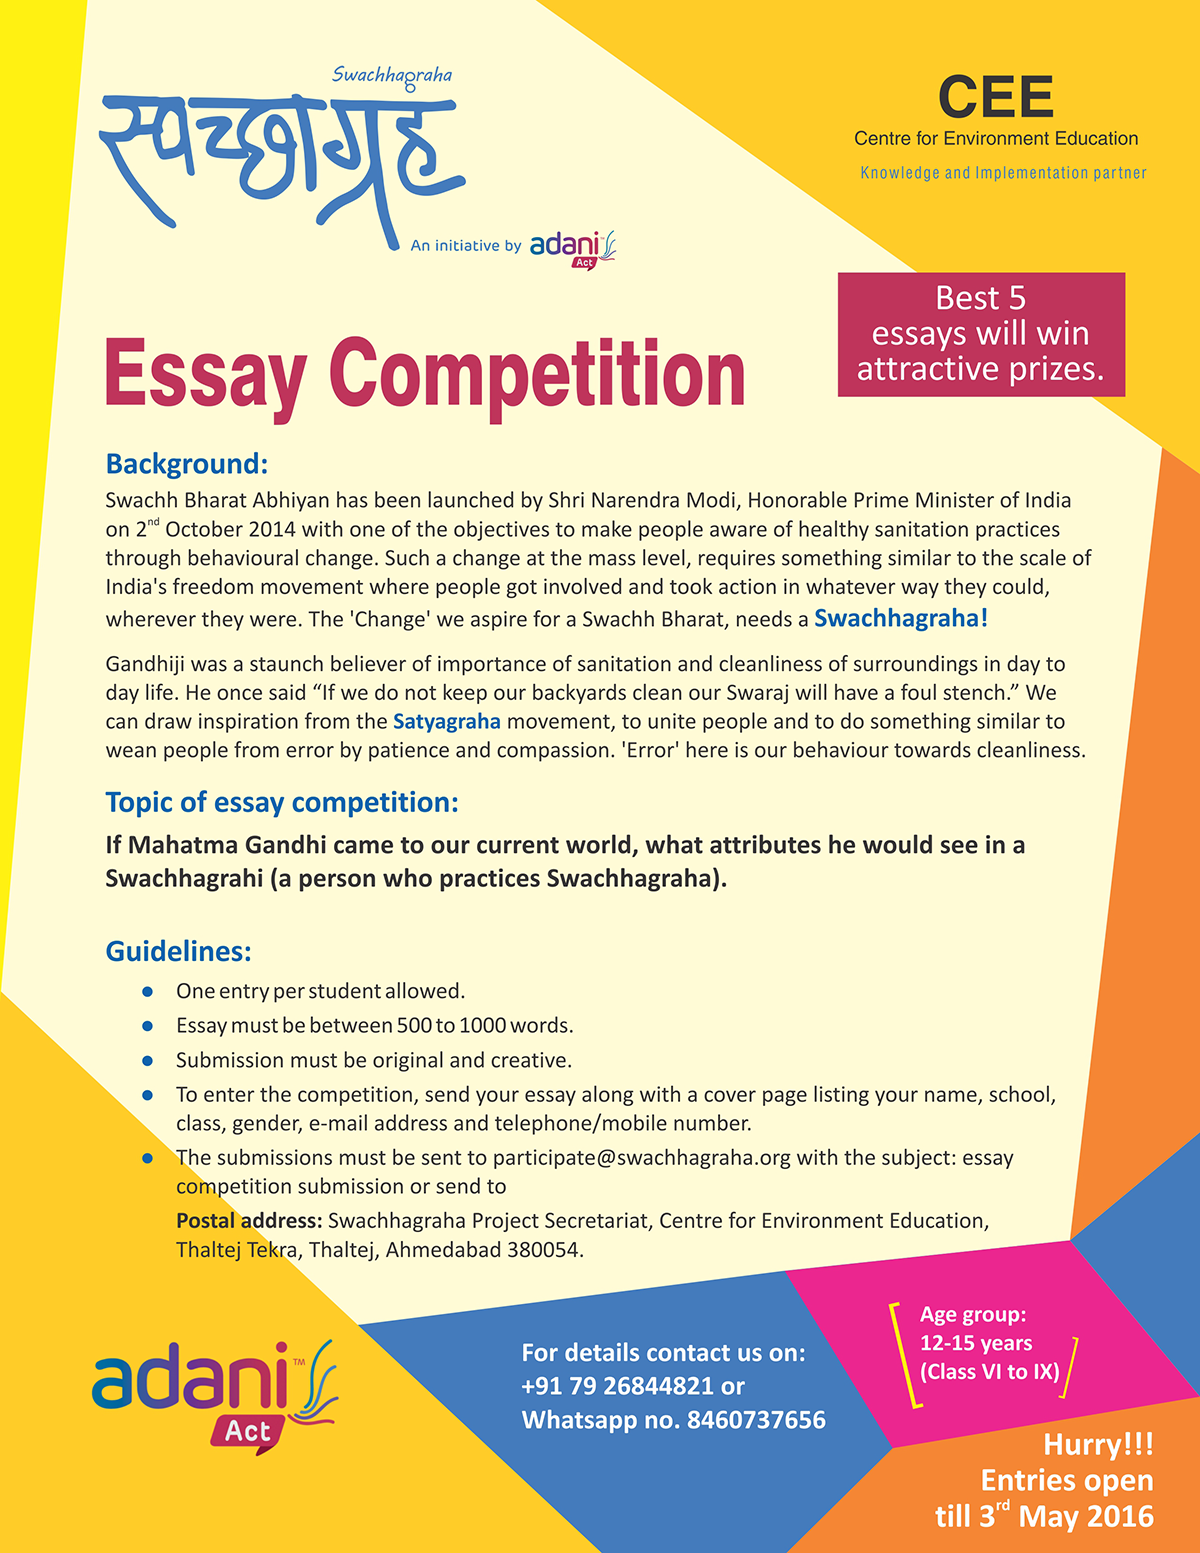 011 20180129171946essay20competition Essay About Cleanliness In School Phenomenal Campaign On Toilets And Its Surrounding Persuasive Full